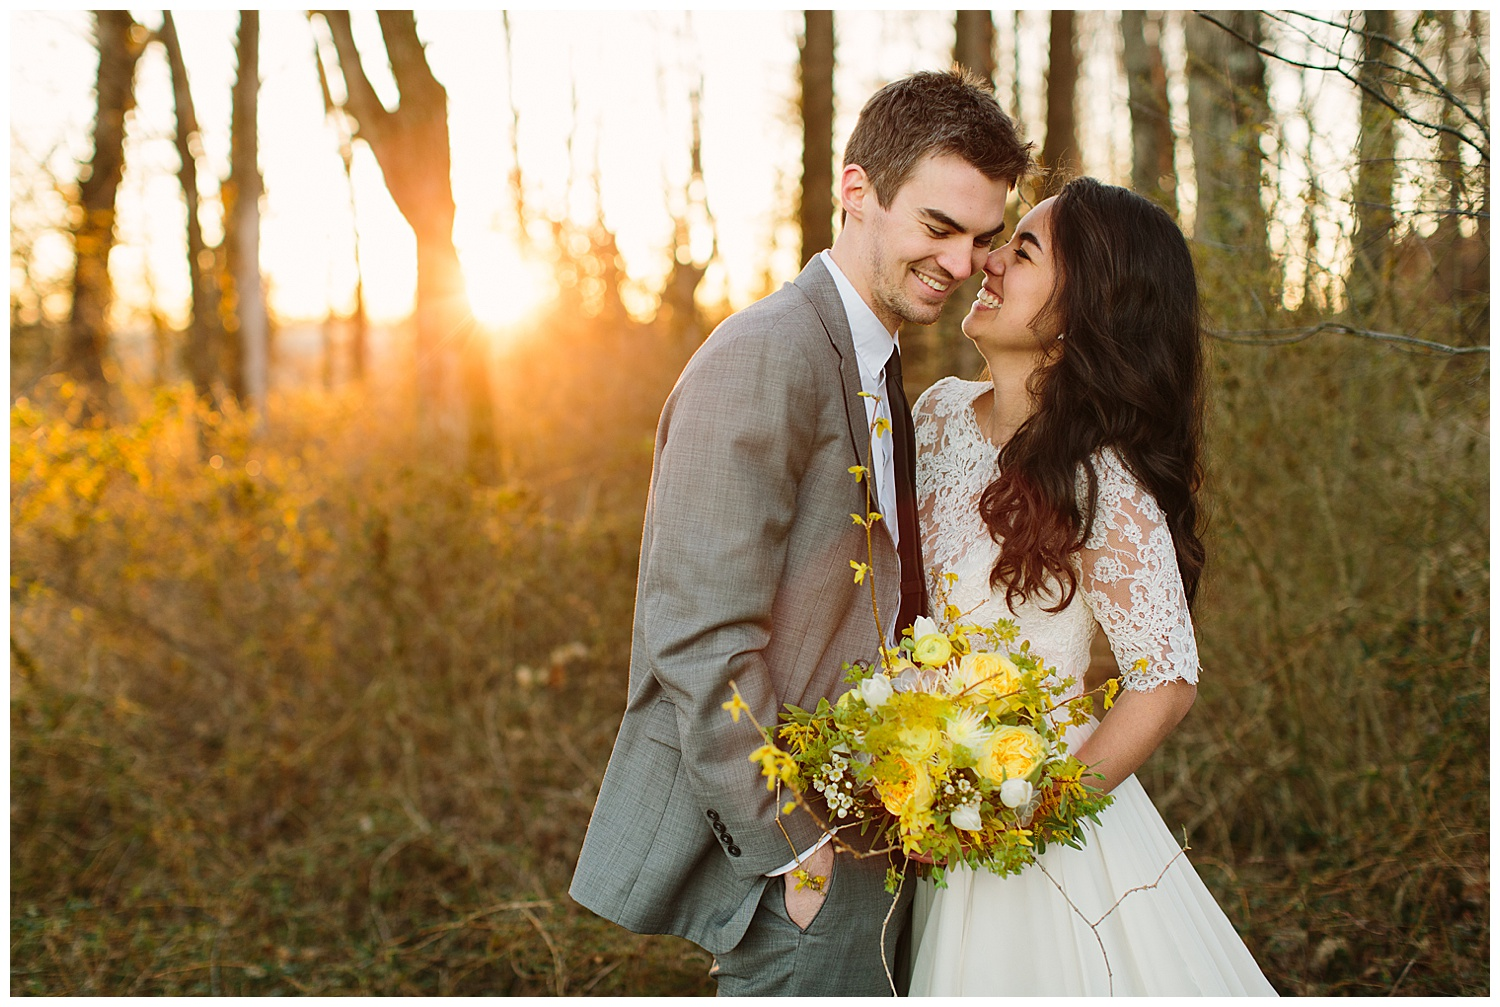 trent.and.kendra.photography.foxhollow.farm.elopement-25.jpg